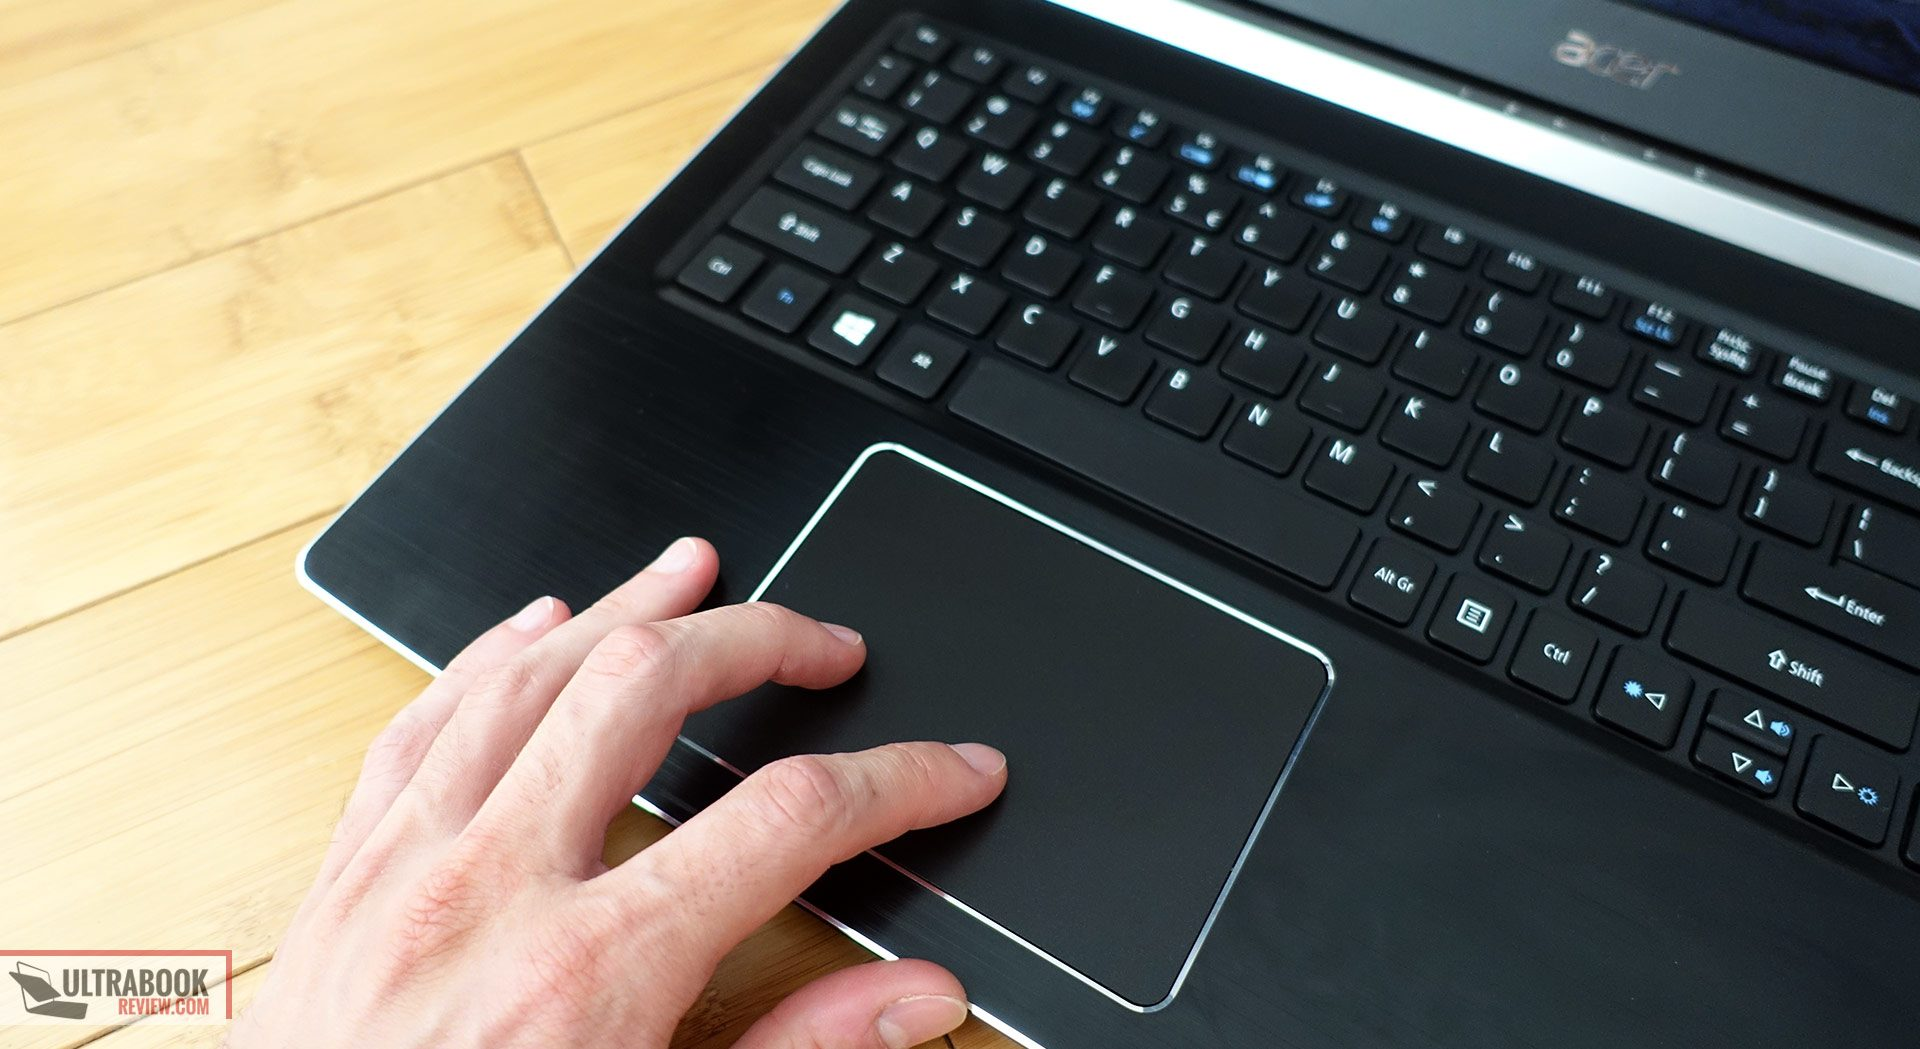 Acer Aspire 5 A515-51 review - an excellent and affordable mid-range